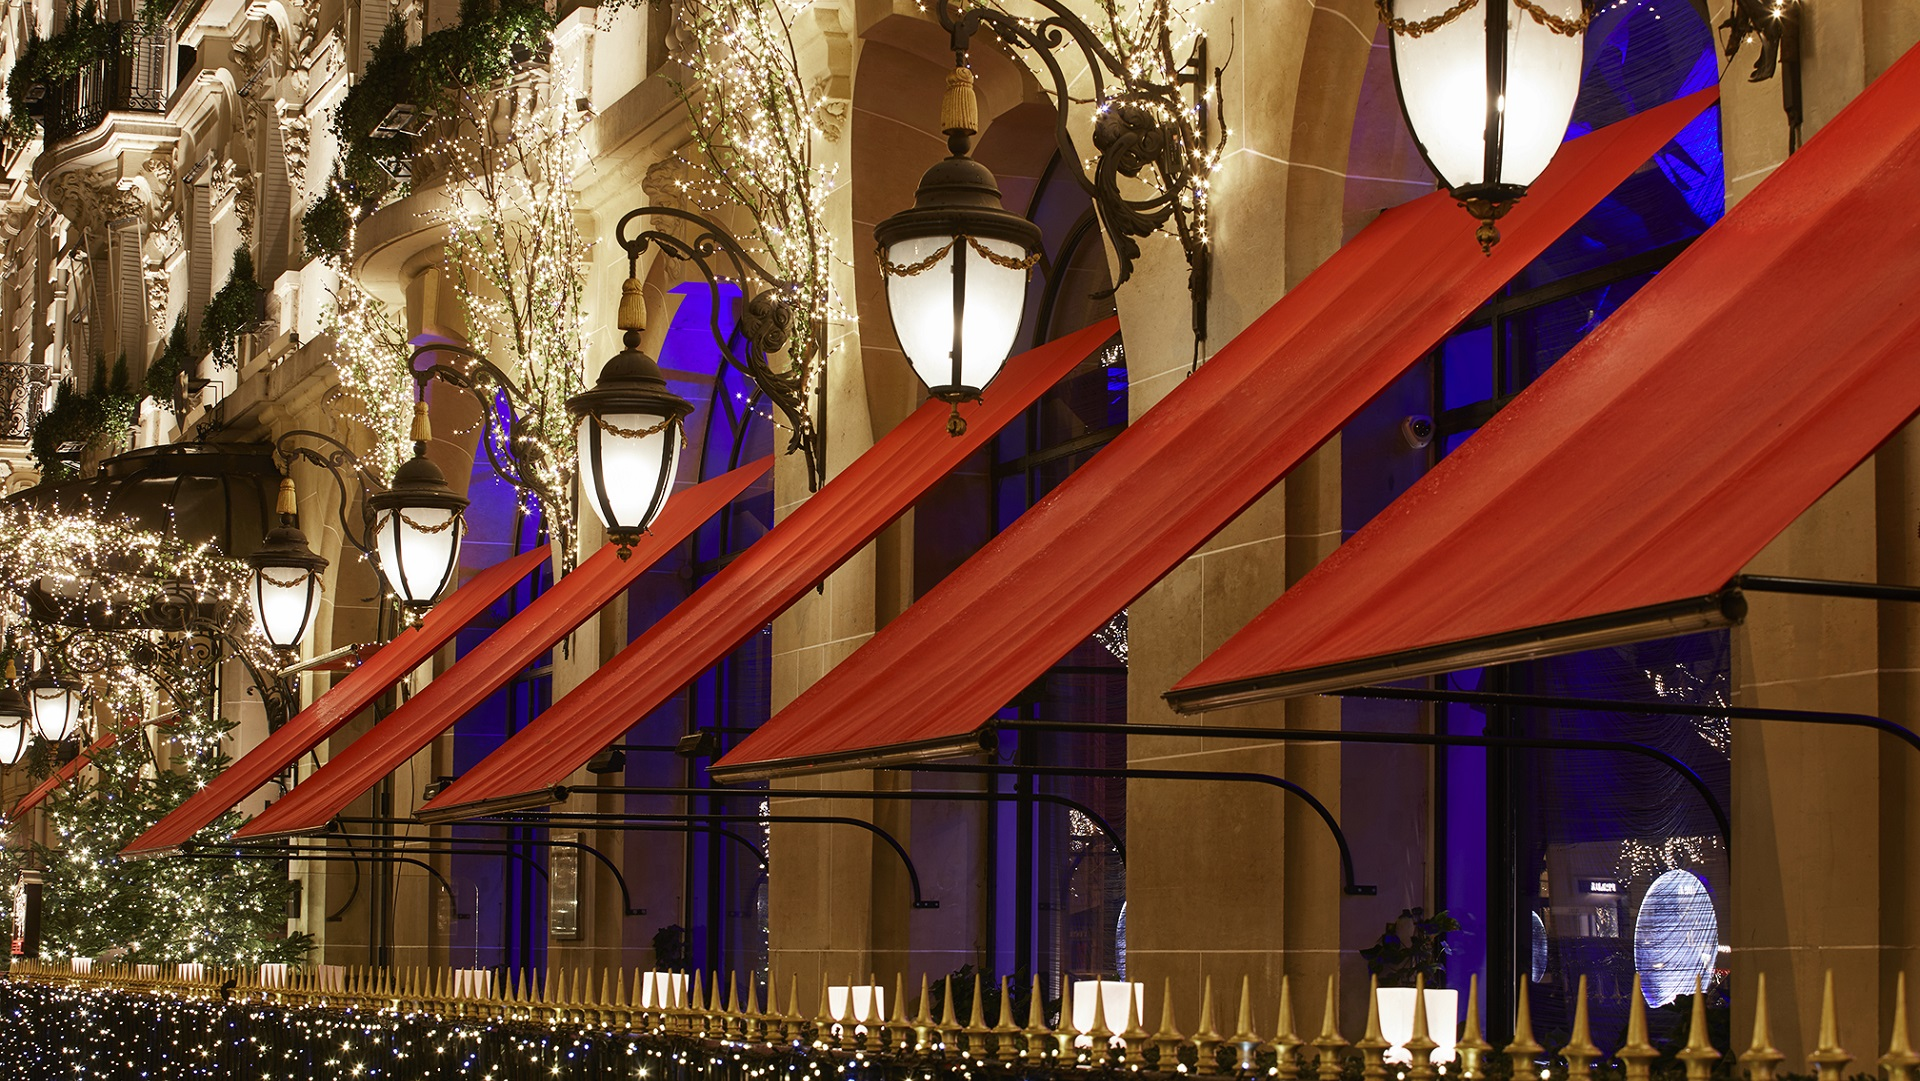 picture of the facade with red blind and festive lights